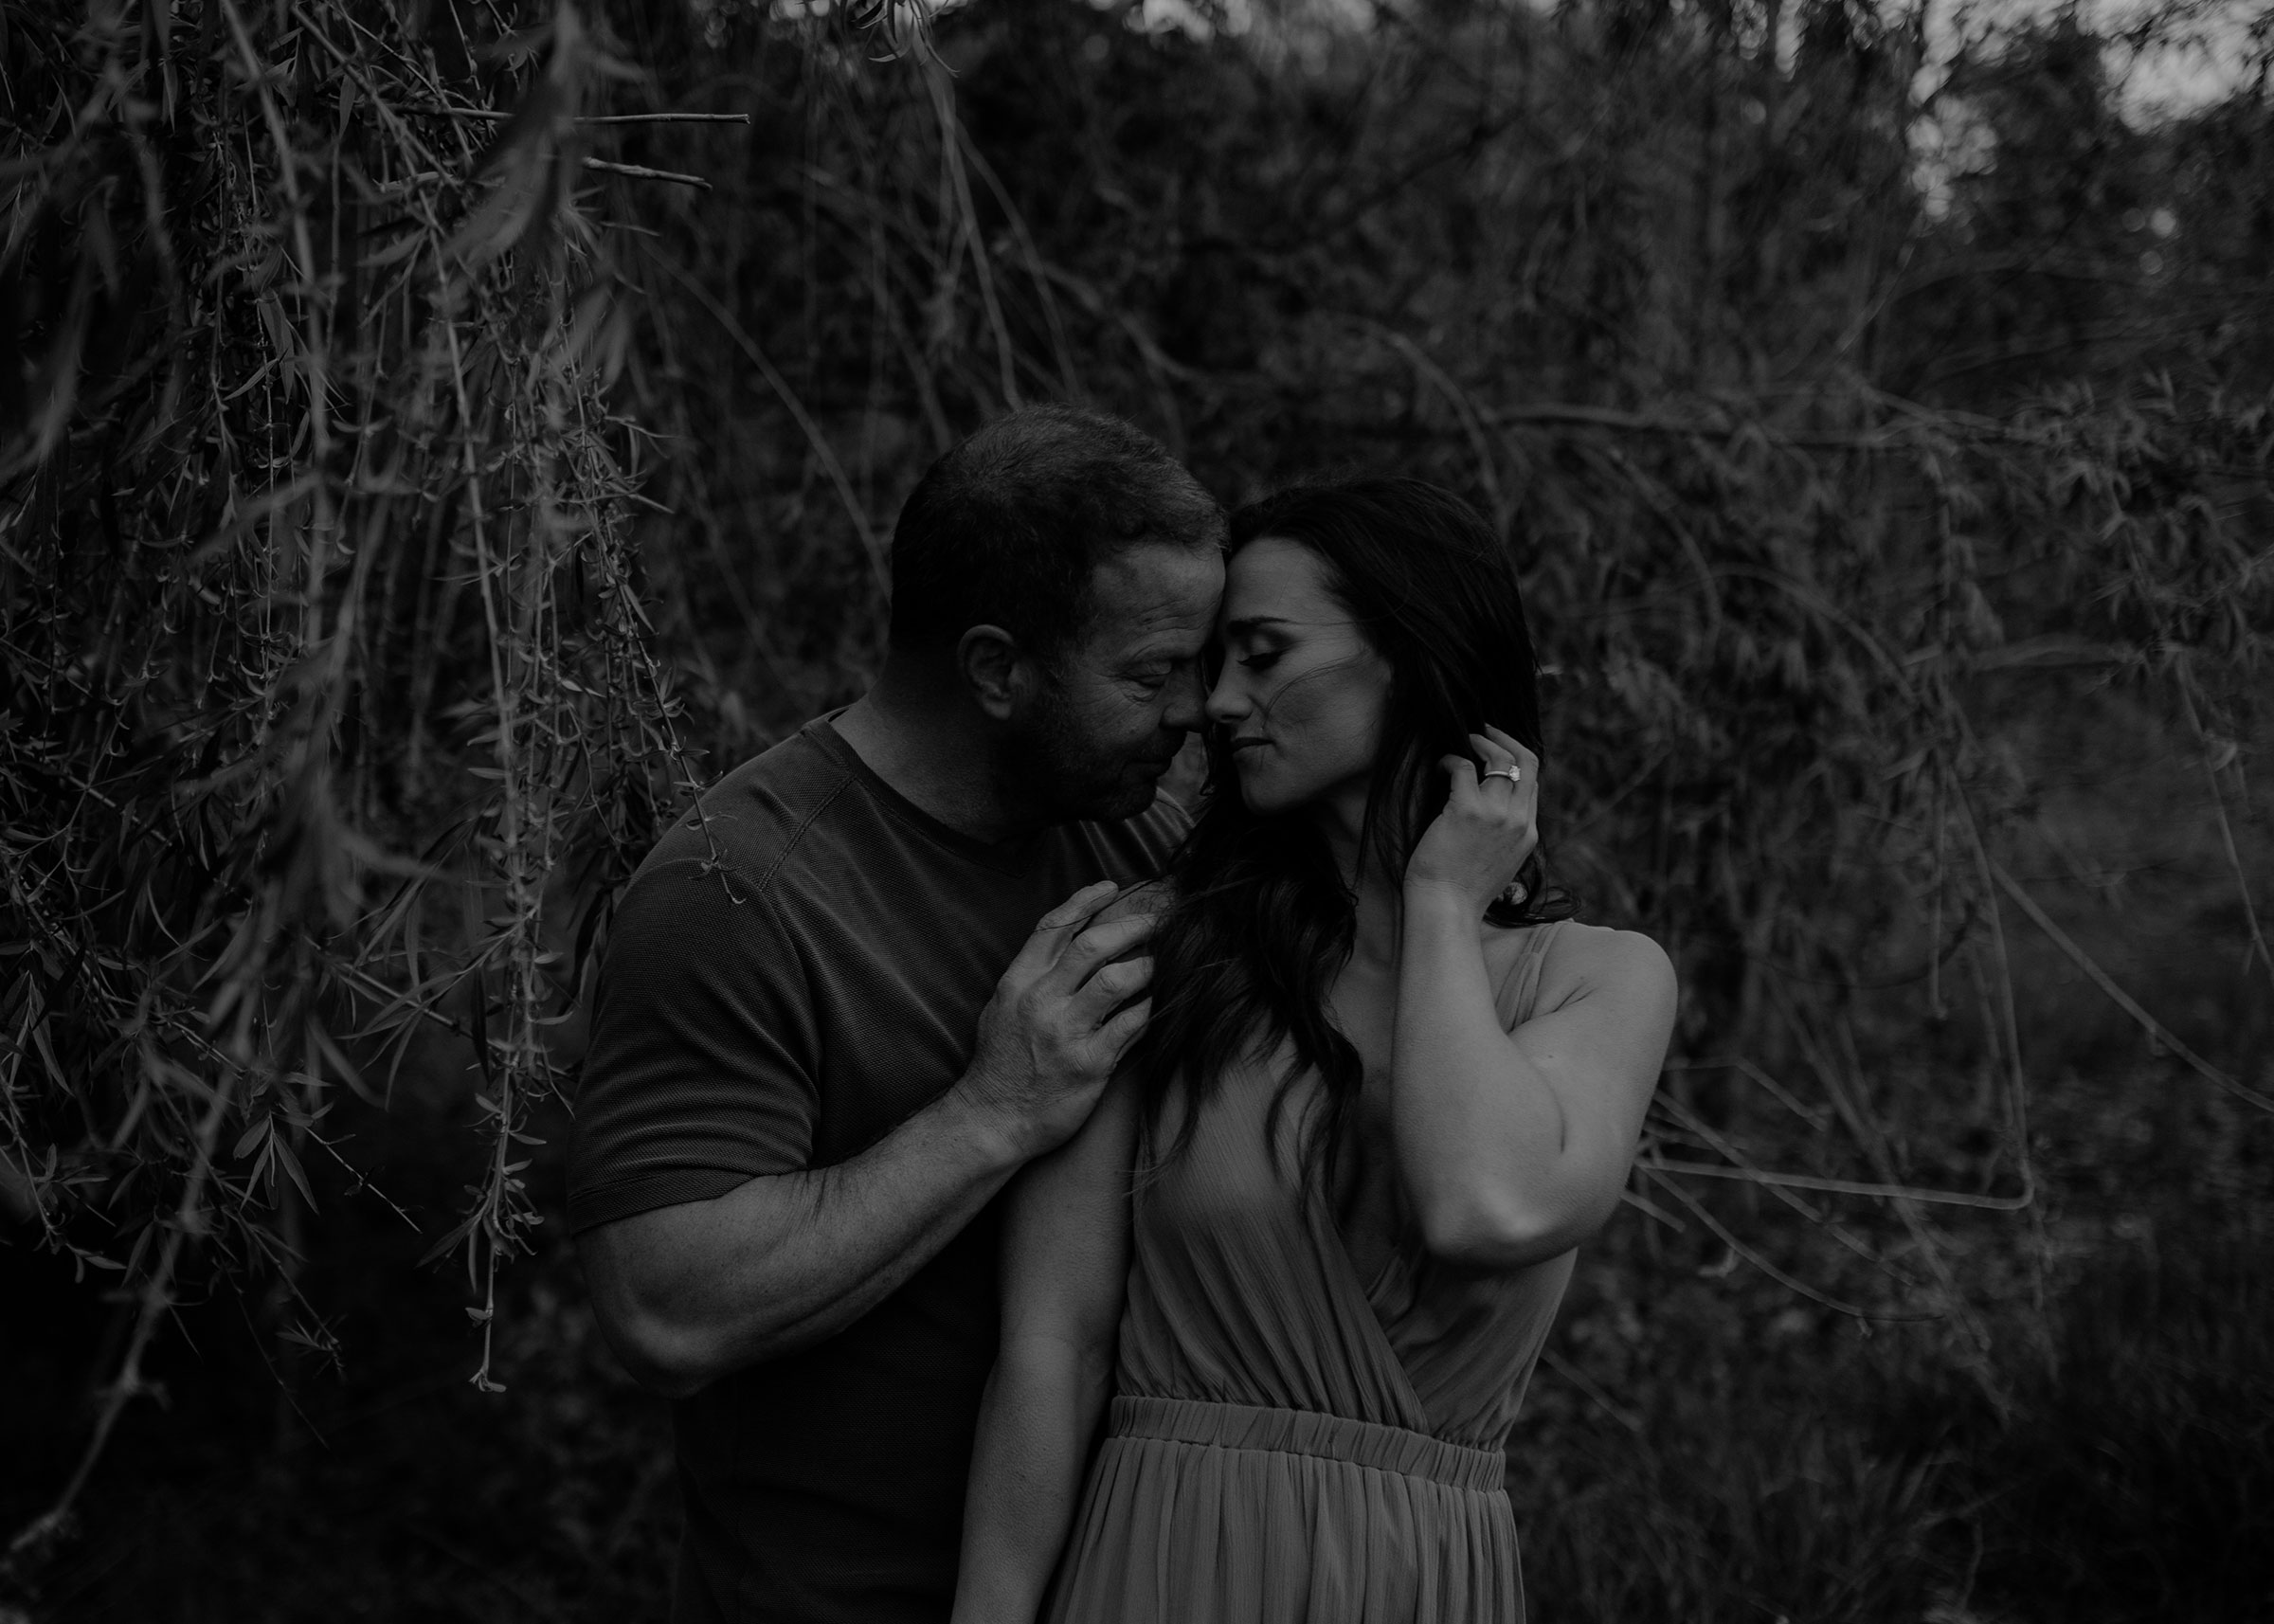 couple-holding-close-while-touching-engagement-desmoines-iowa-raelyn-ramey-photography.jpg